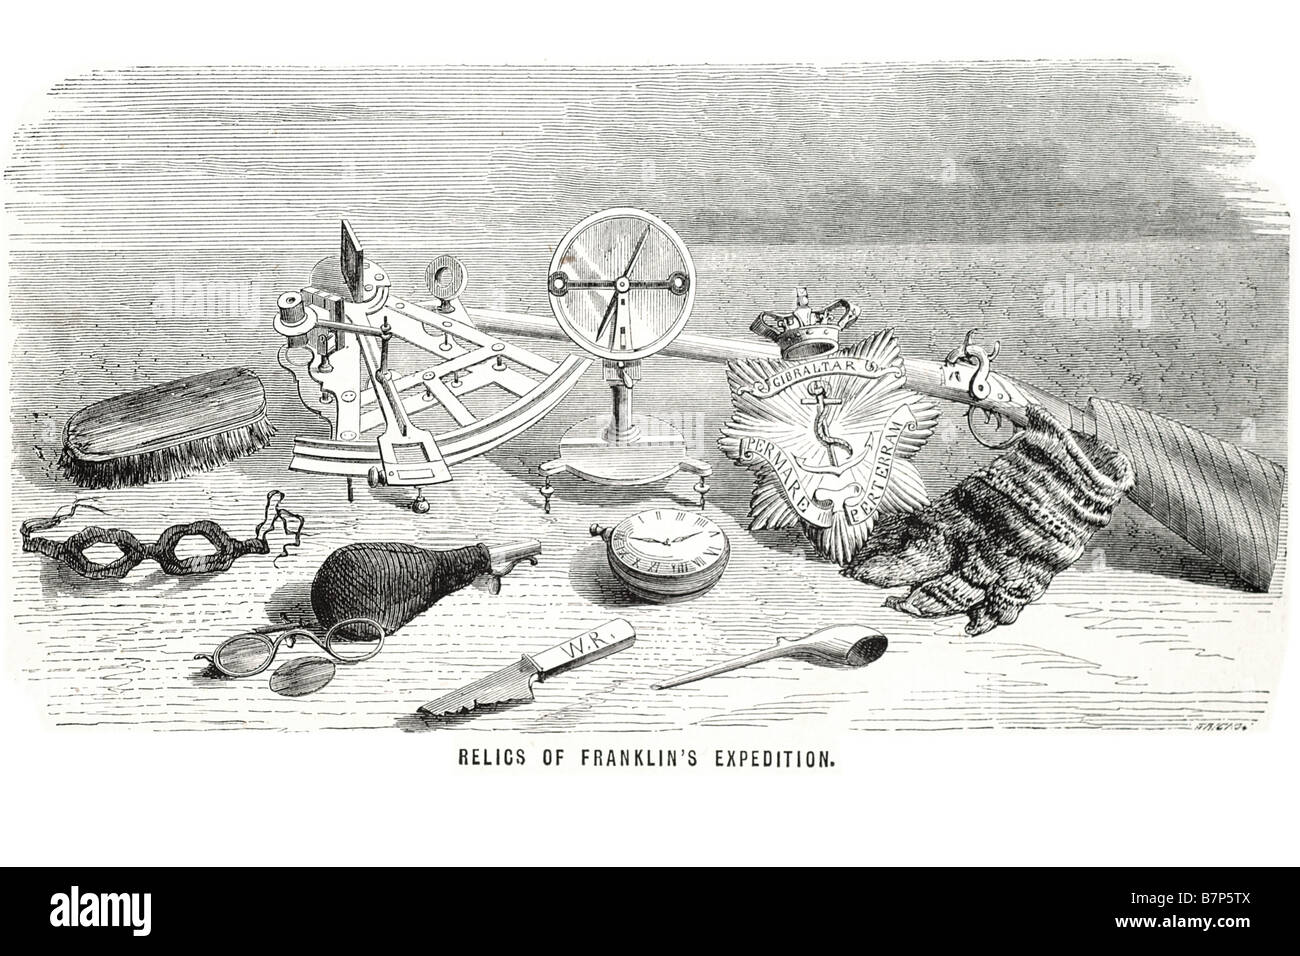 relics Franklin's expedition Sir John Franklin ornaments utensils navigation weapon rifle knife pipe watch goggles - Stock Image